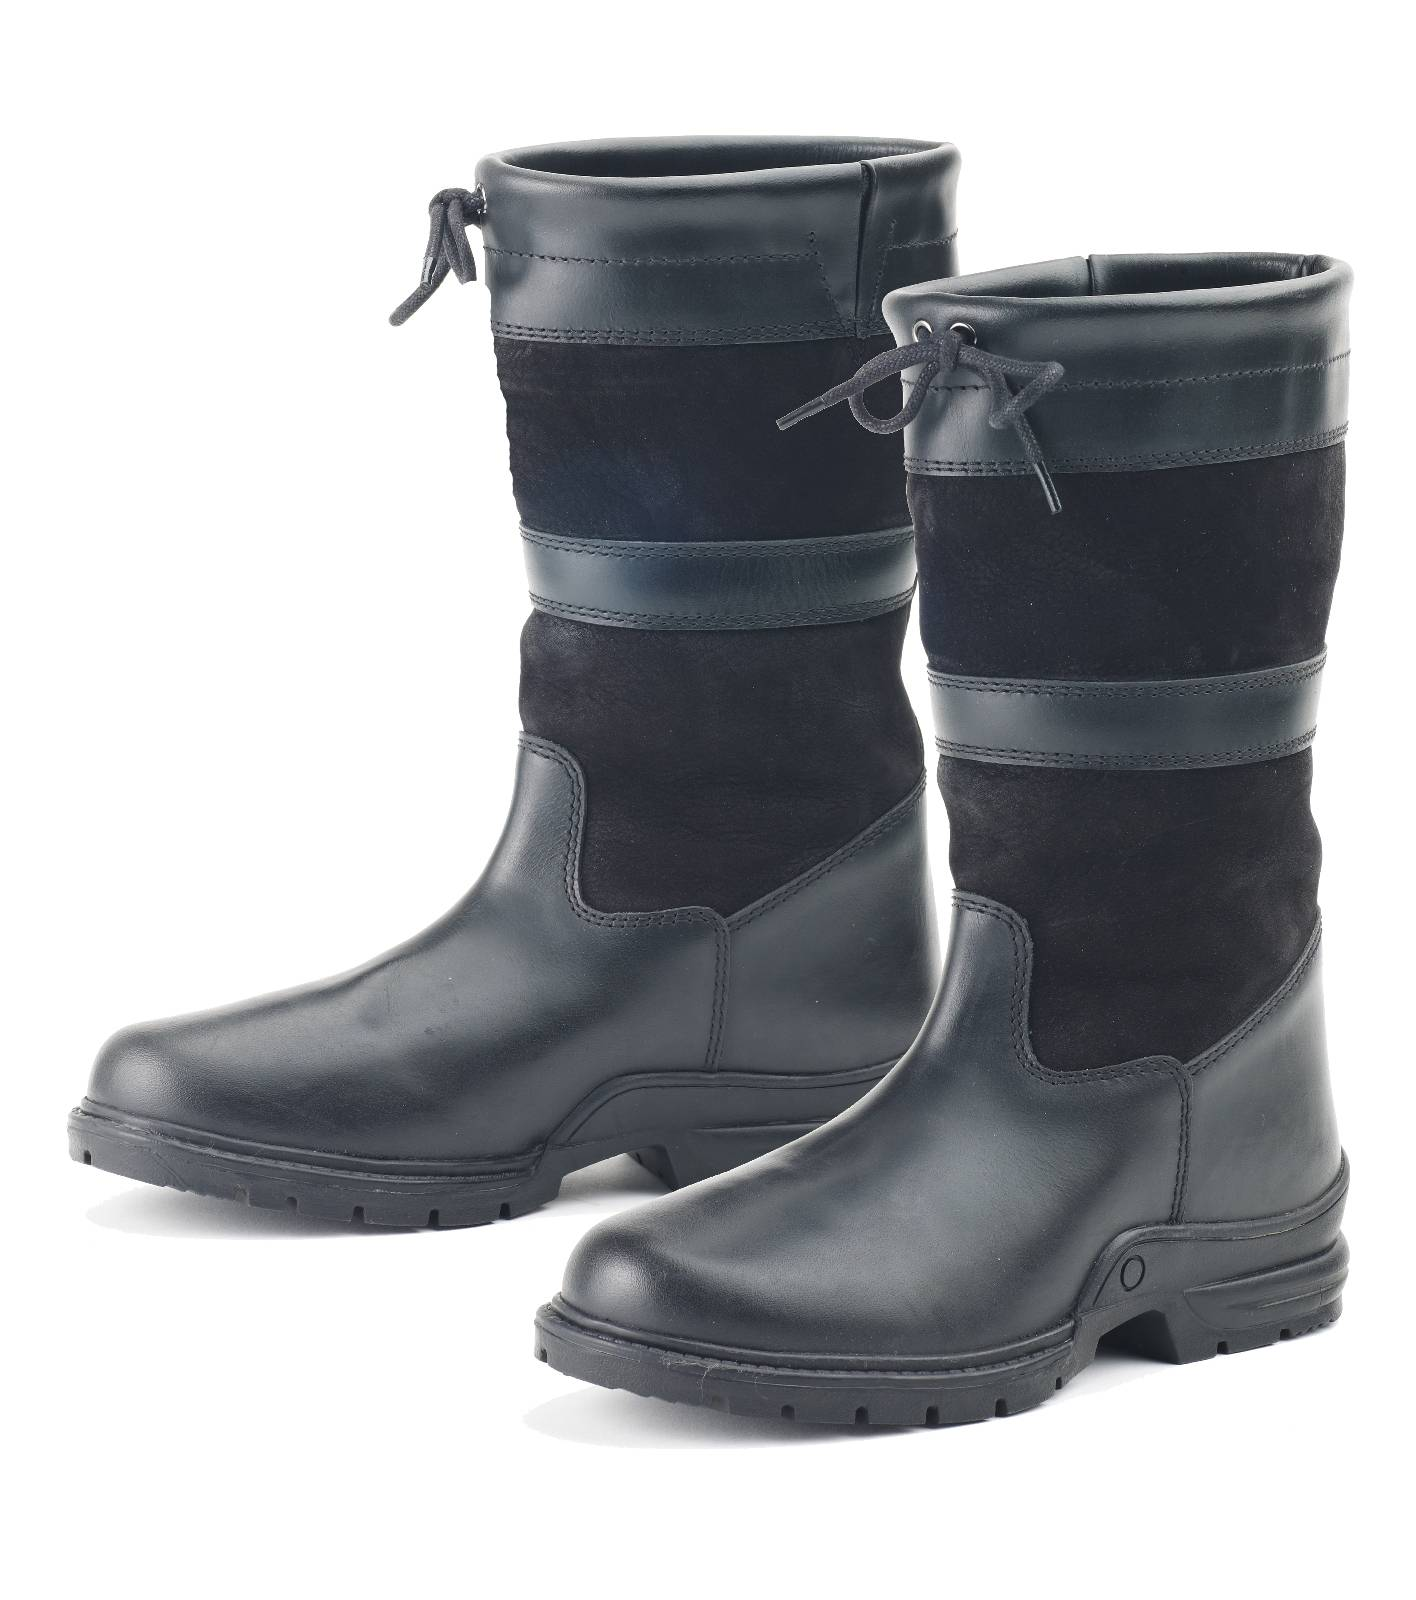 Ovation Quinn Country Boots - Ladies